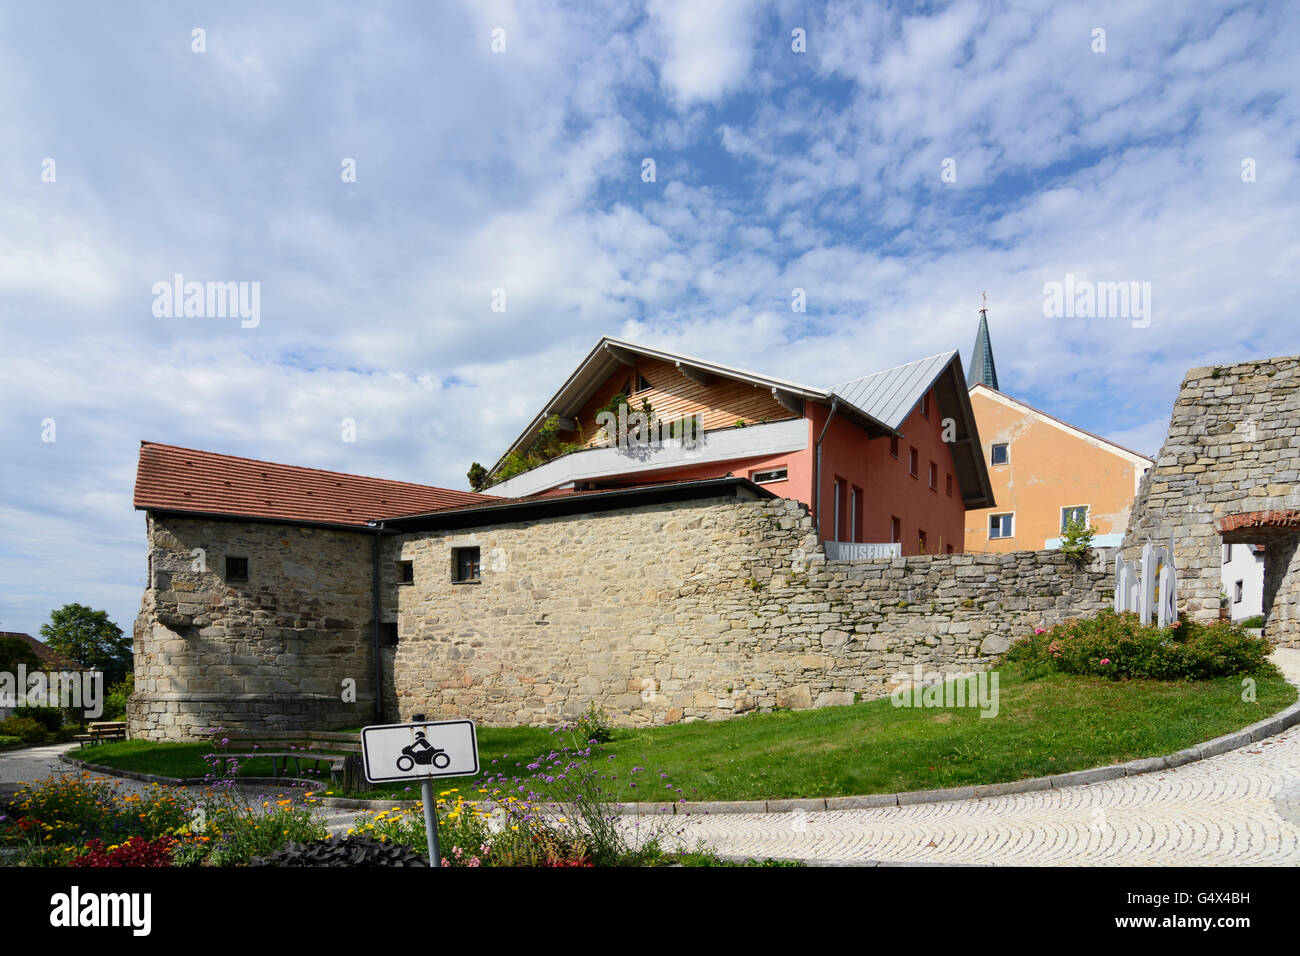 city walls, Museum 'Goldener Steig', Waldkirchen, Germany, Bayern, Bavaria, Niederbayern, Lower Bavaria - Stock Image